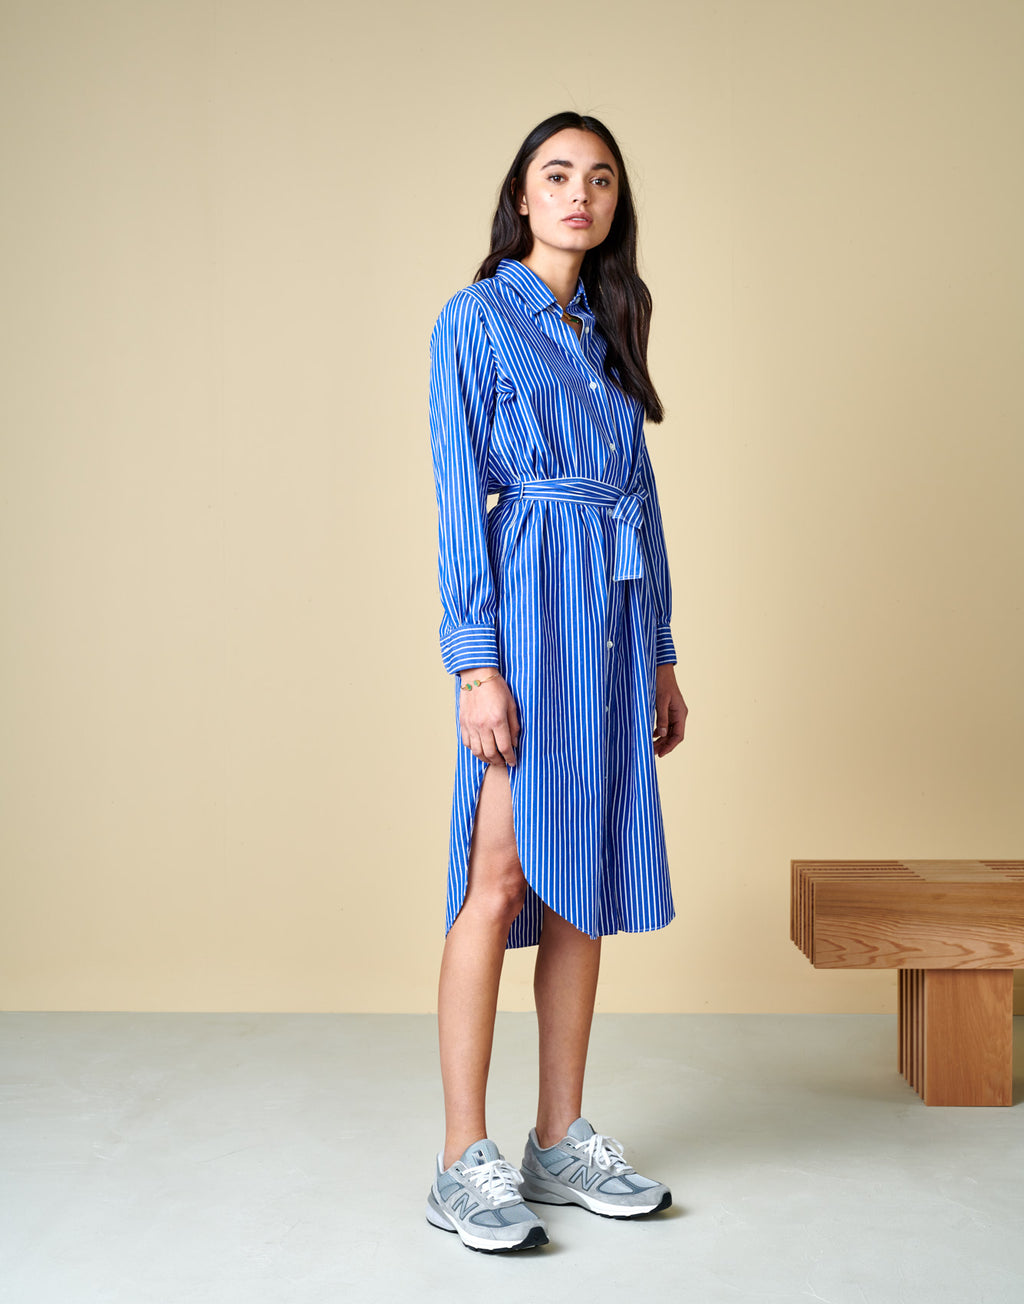 Bellerose GEORGES DRESS striped blue white shirt dress madress